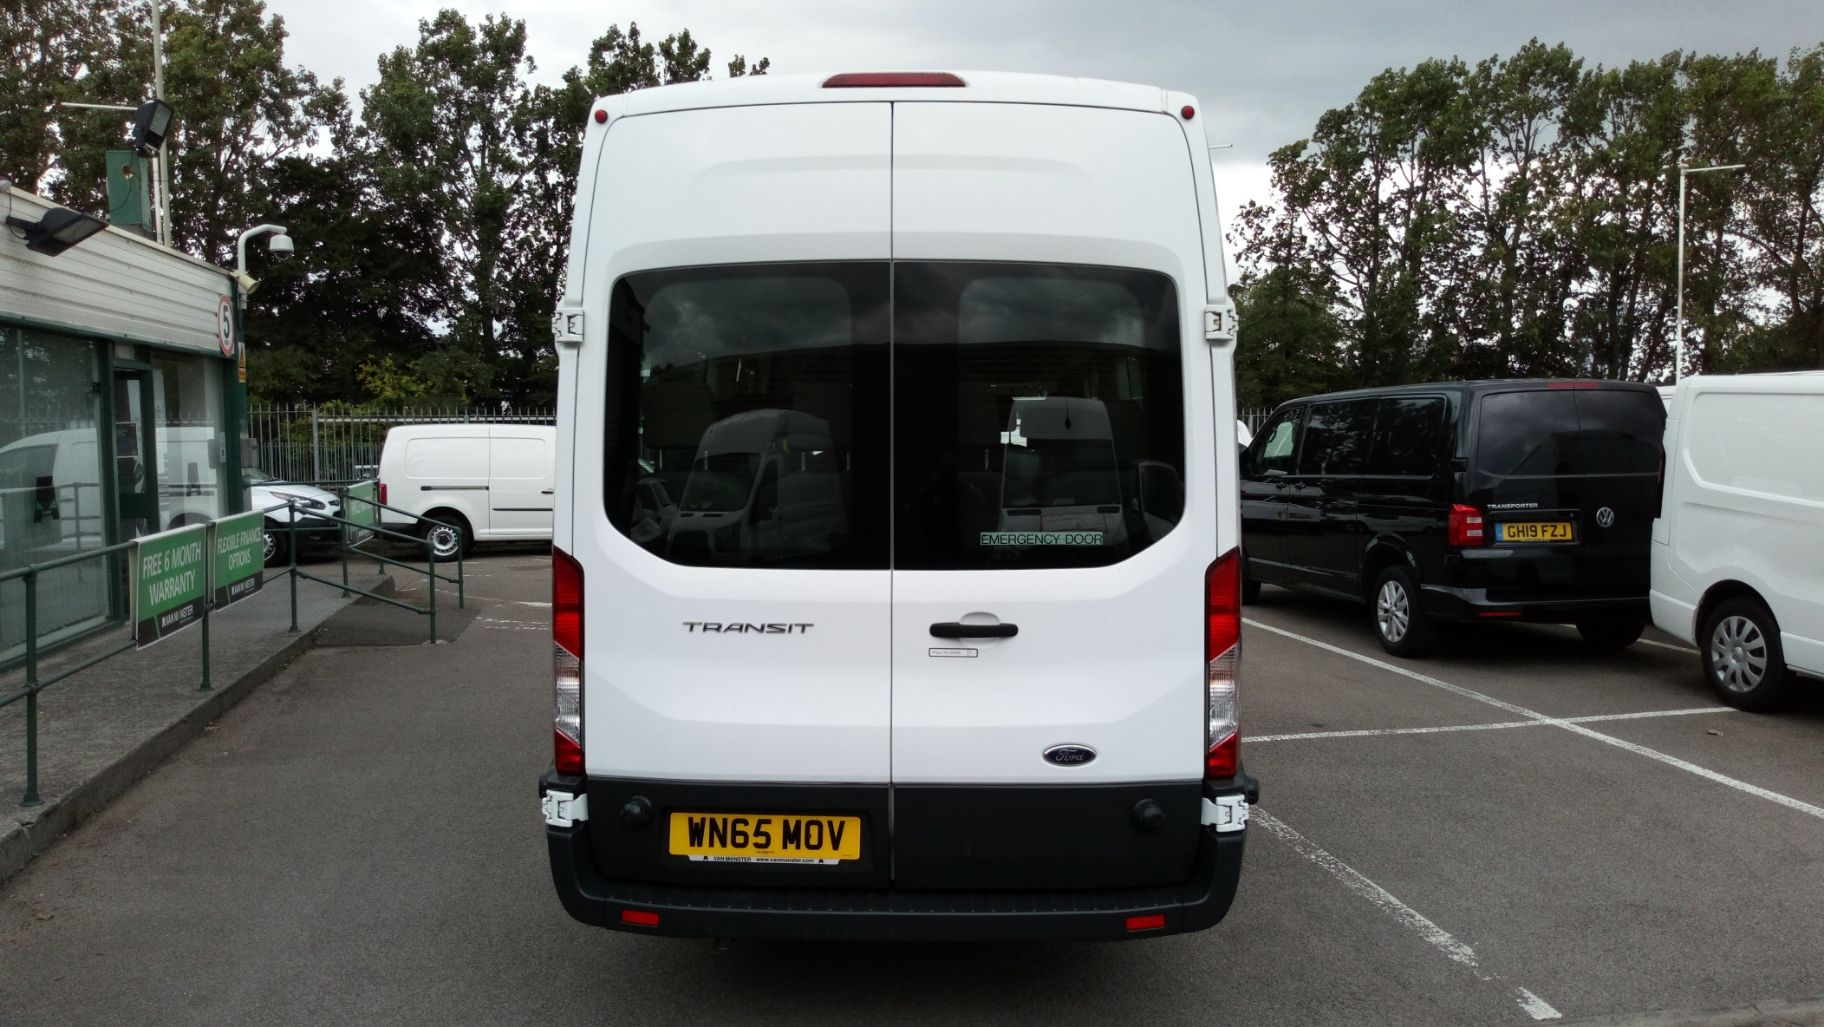 2015 Ford Transit 2.2 Tdci 125Ps H3 17 Seater (WN65MOV) Image 4